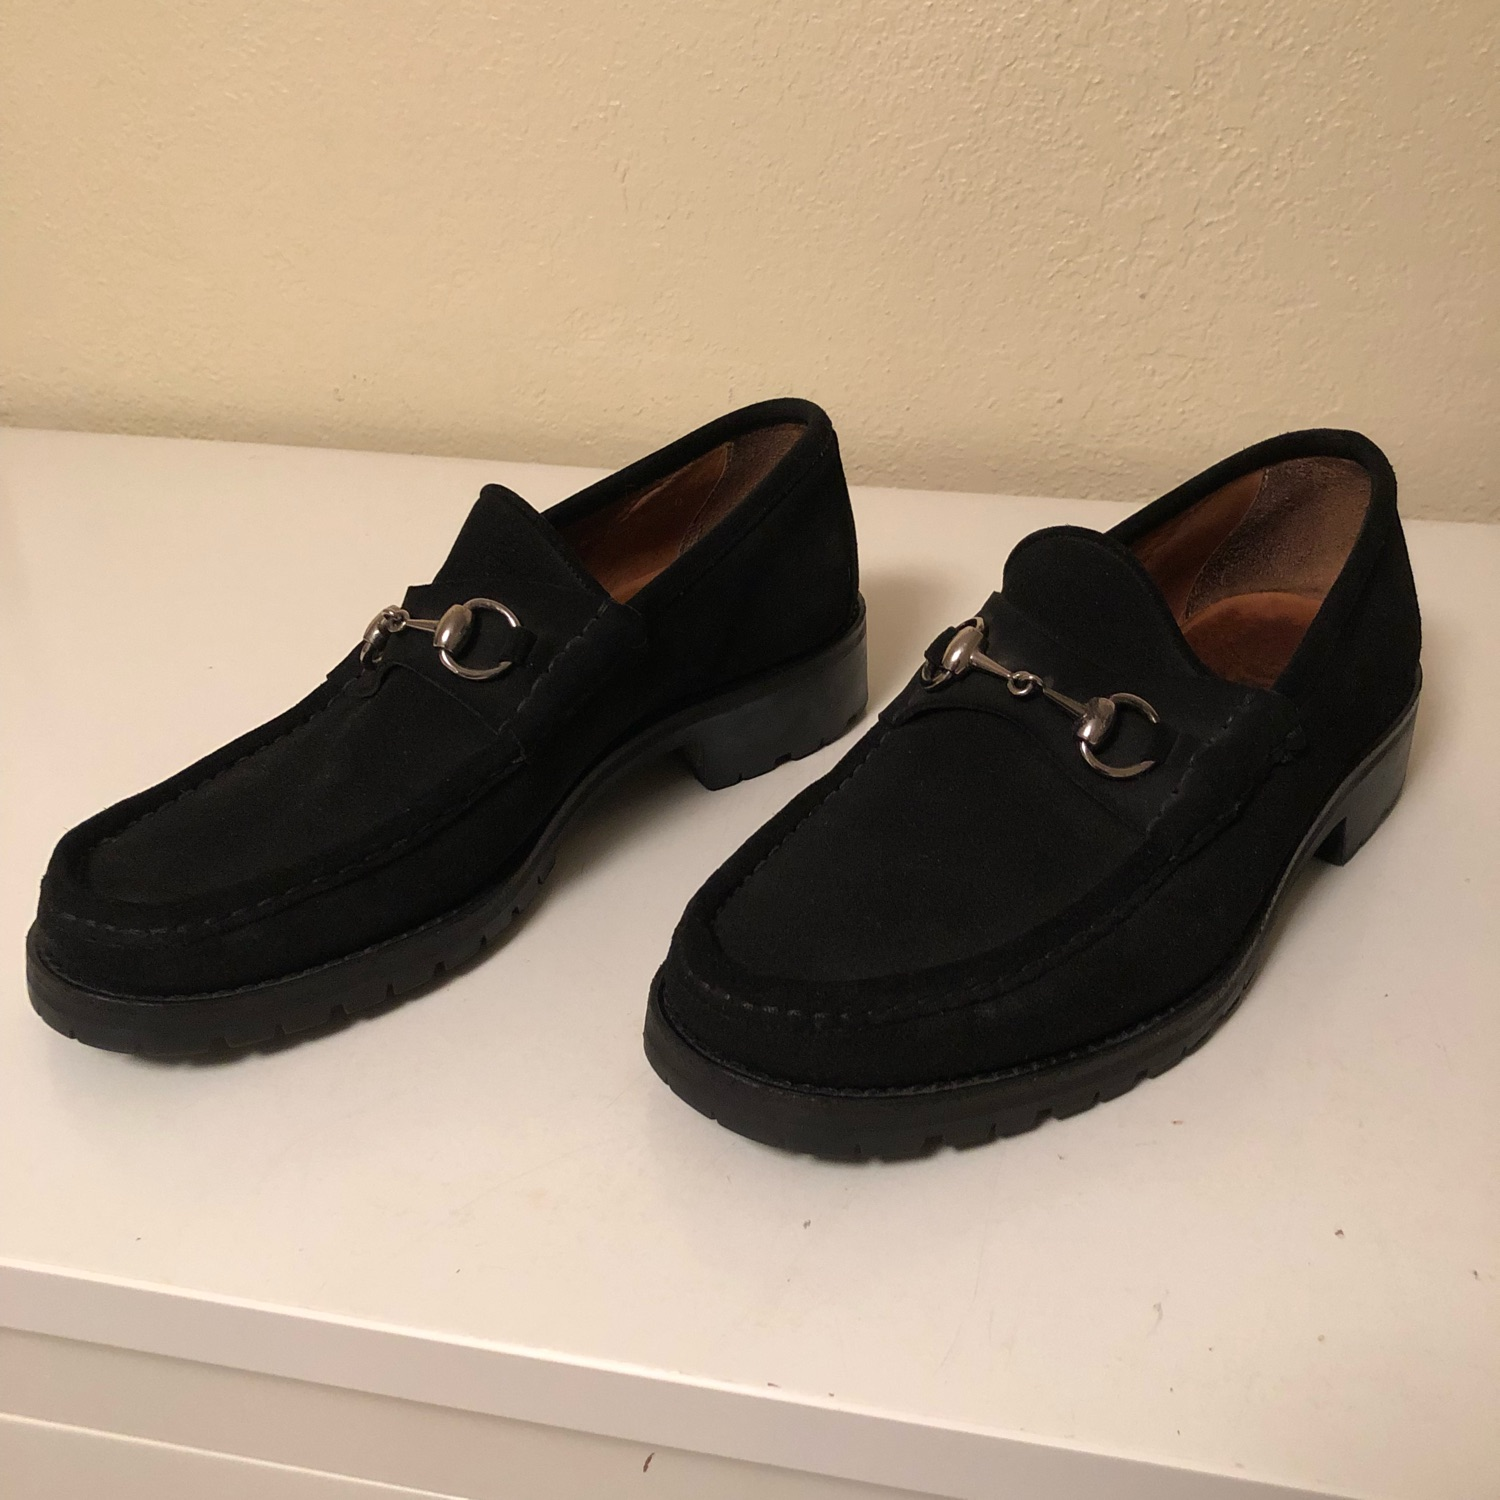 Used Vintage Gucci Loafers